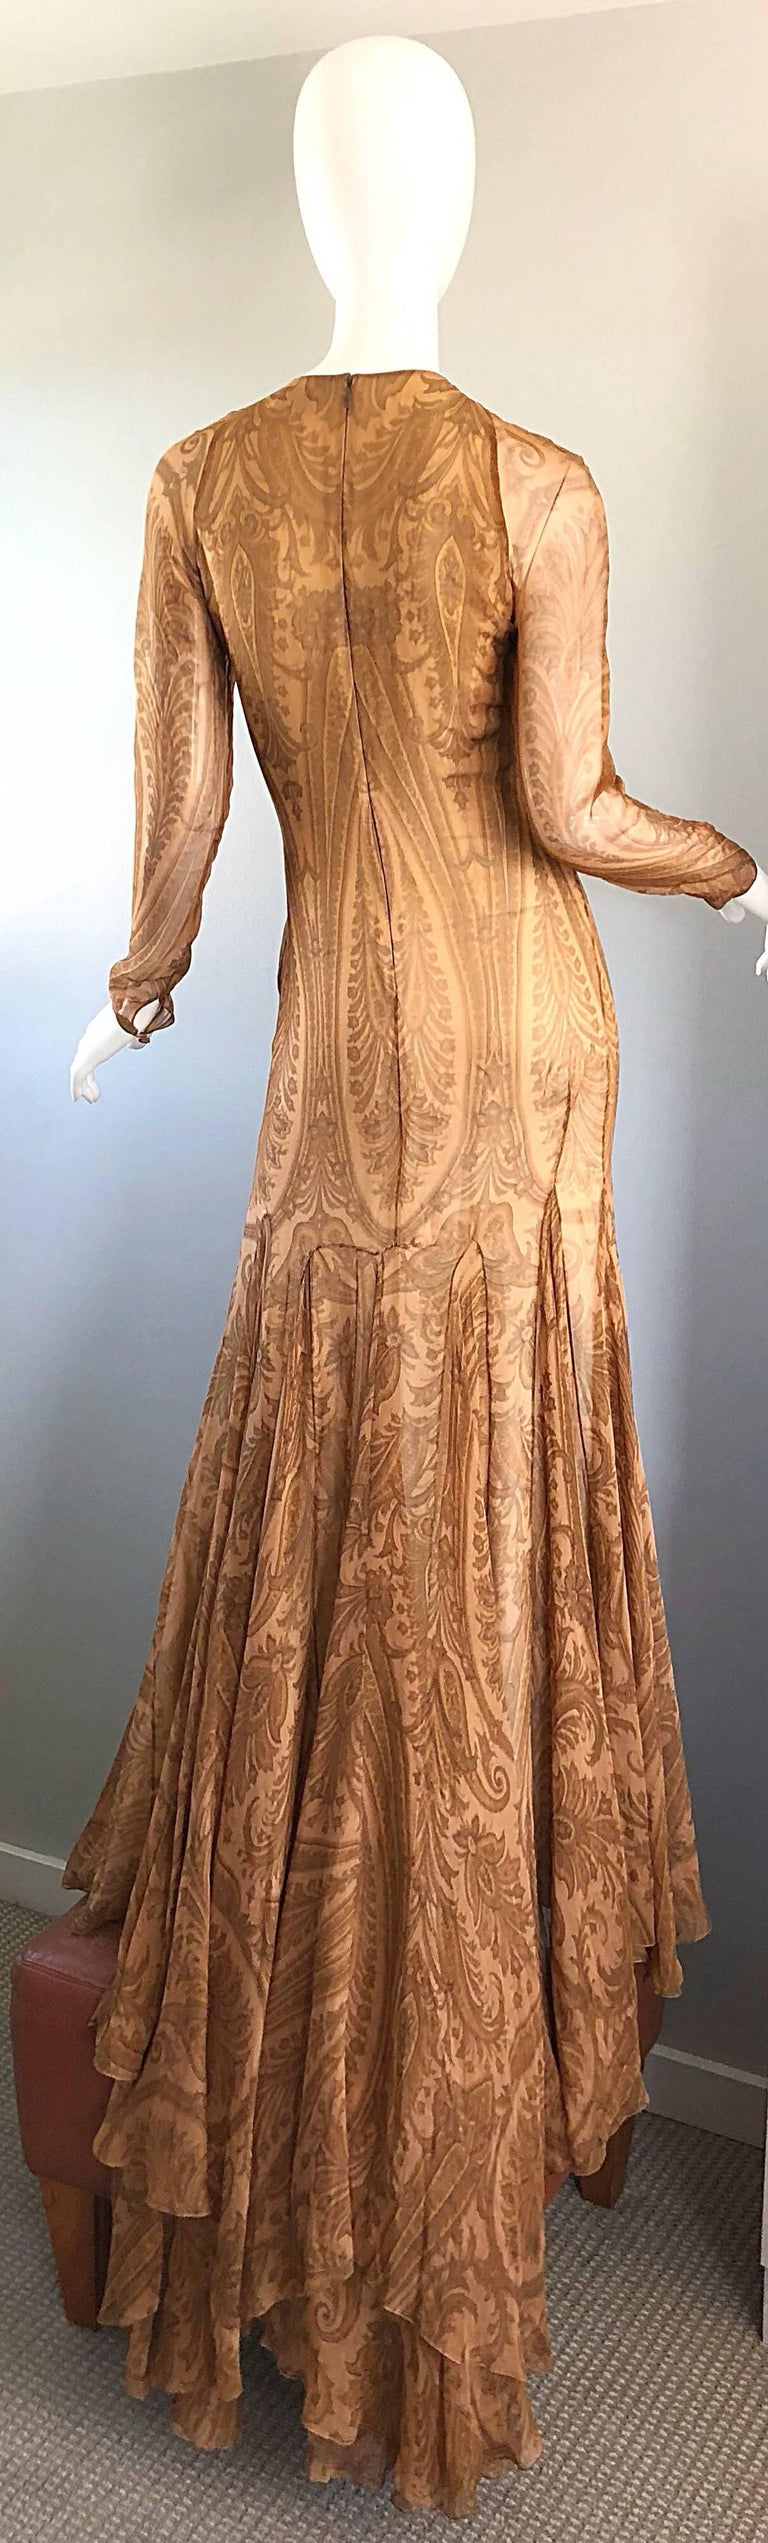 Sensational 1990s Bill Blass Couture Nude Silk Chiffon Paisley Vintage 90s Gown  For Sale 3